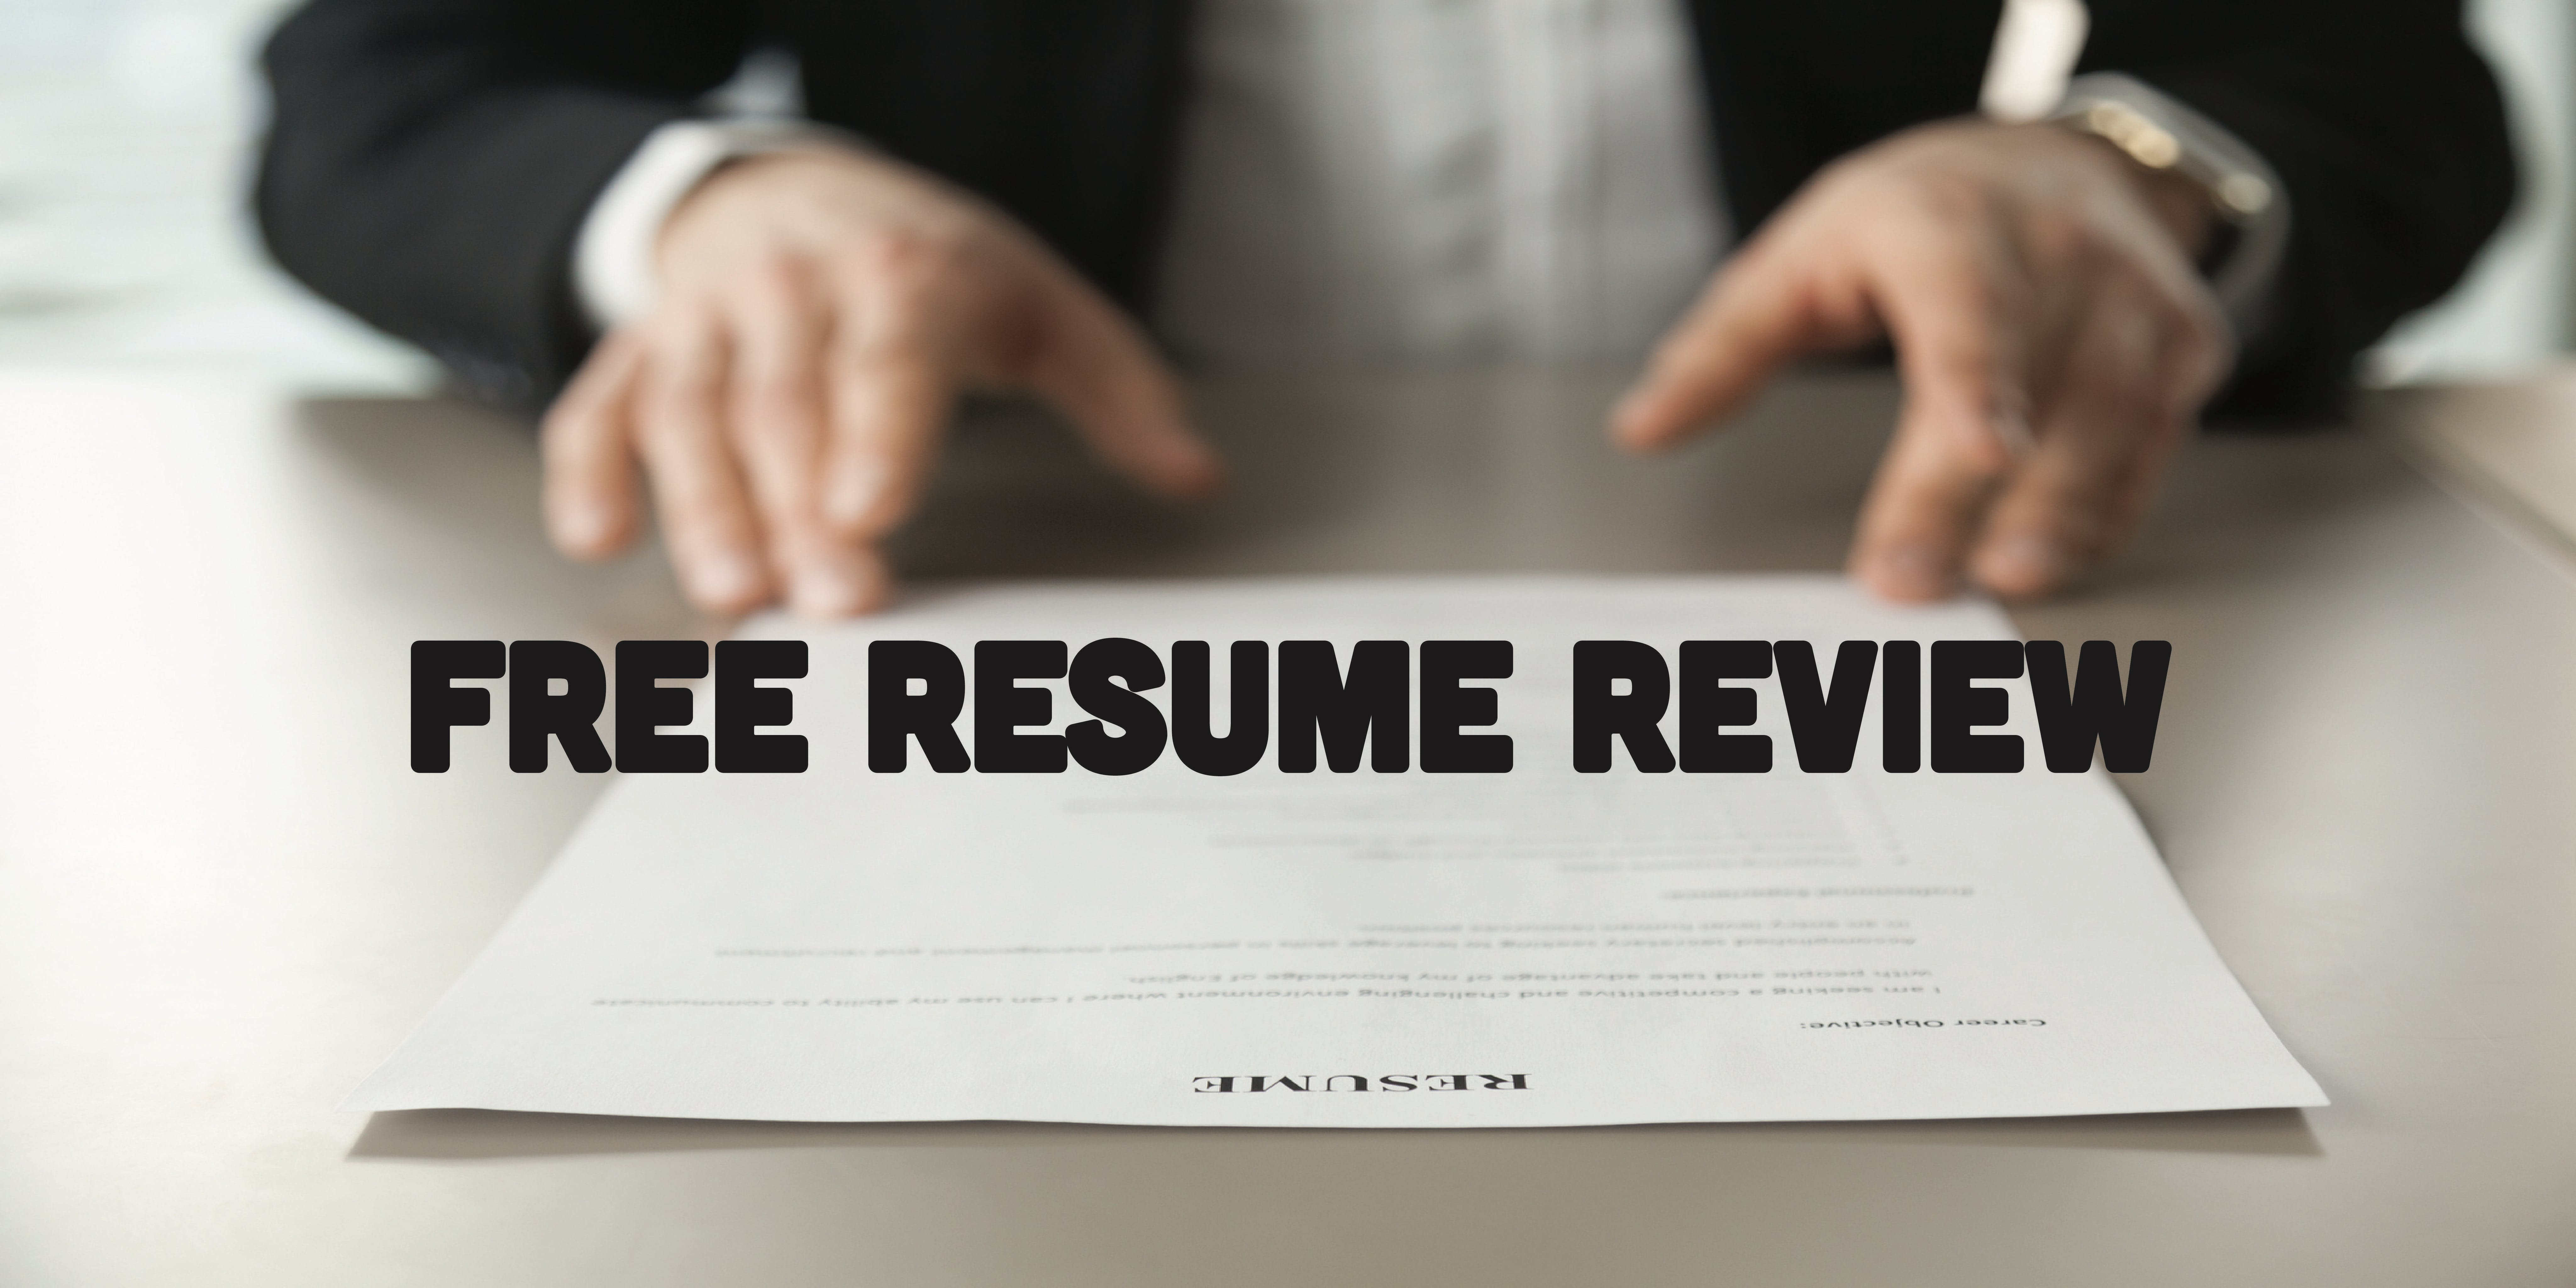 Free Resume Review.Free Resume Review Tri Valley Career Center Dublin